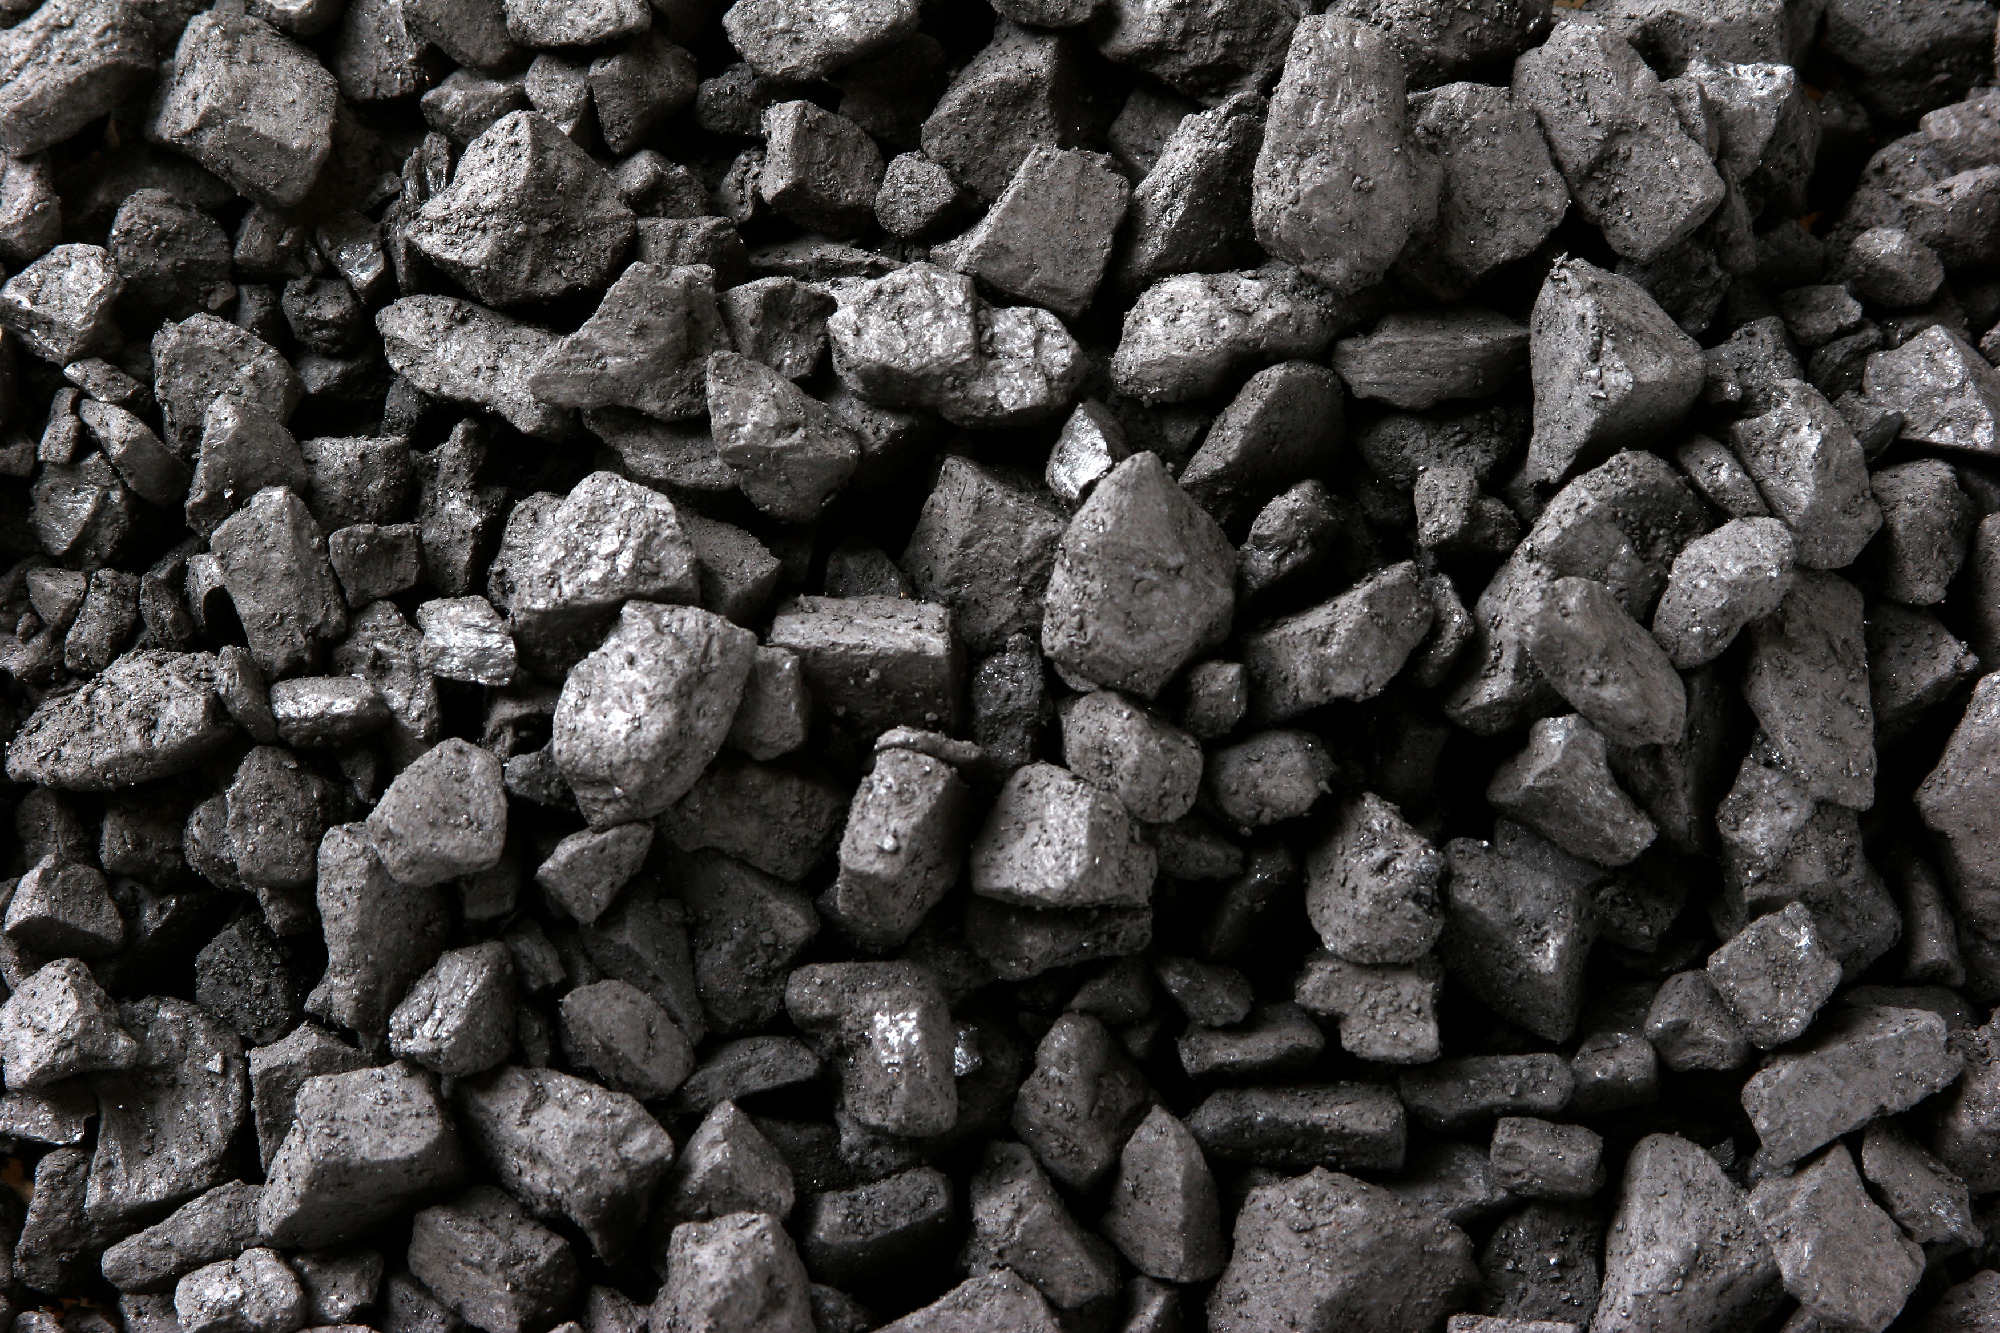 bharat coking coal ltd vs m s Decisions of this court in bharat coking coal limited vs annapurna construction (2008) 6 scc 732 and state of west bengal and ors vs associated.